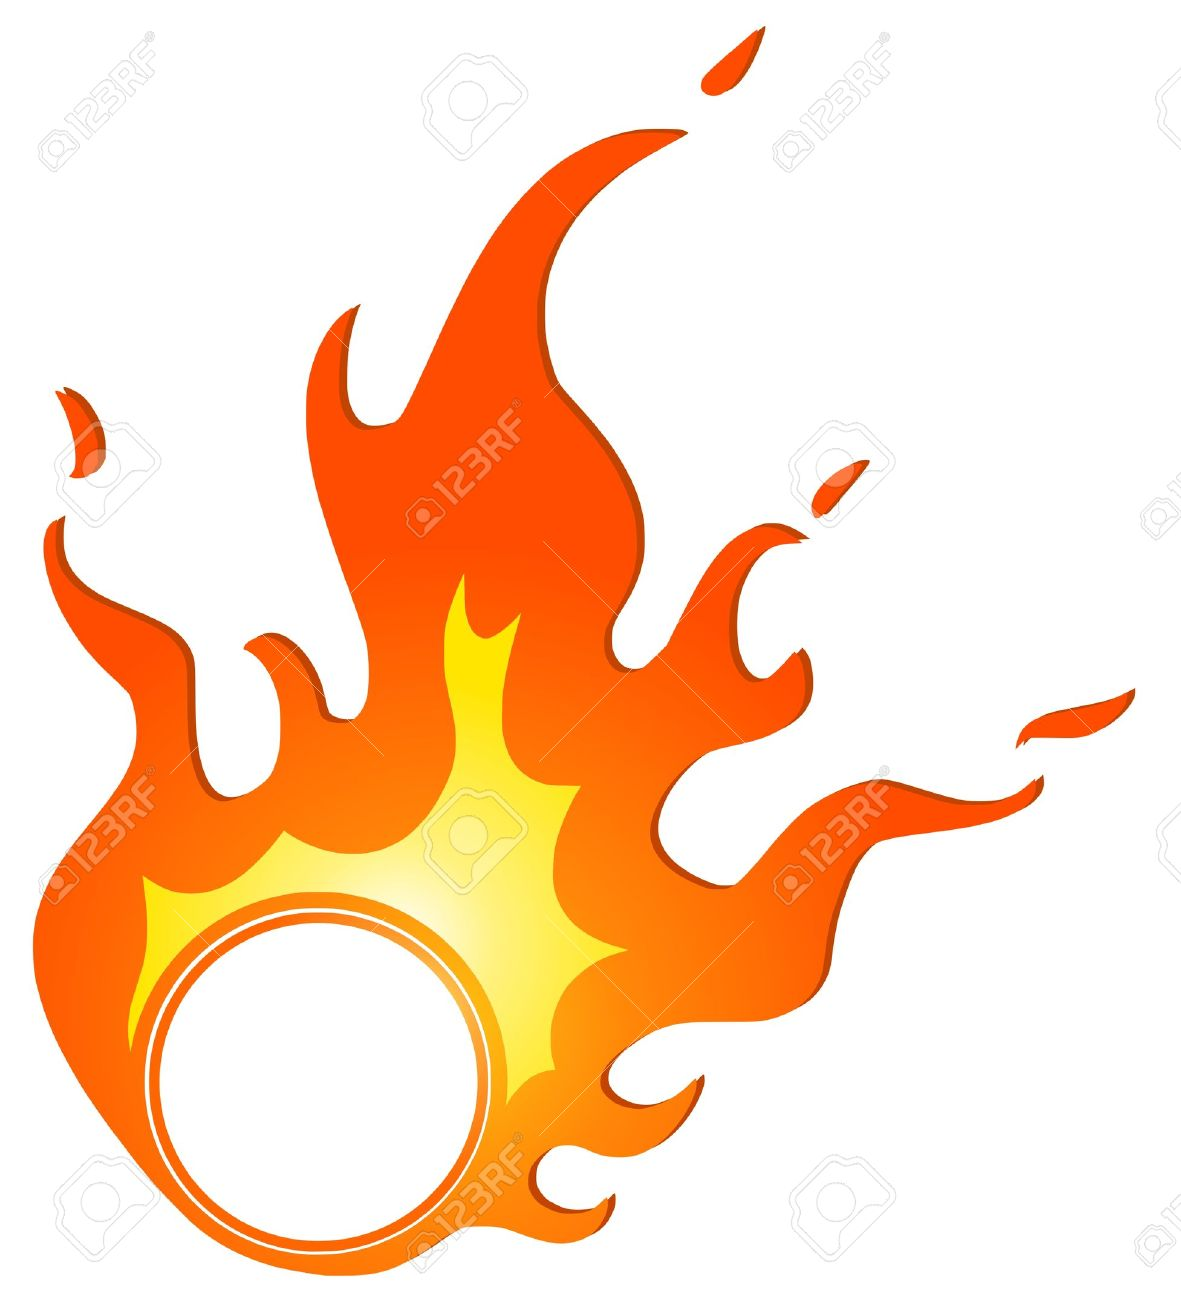 Superior 1181x1300 Ring Of Fire Stock Photos. Royalty Free Business Images